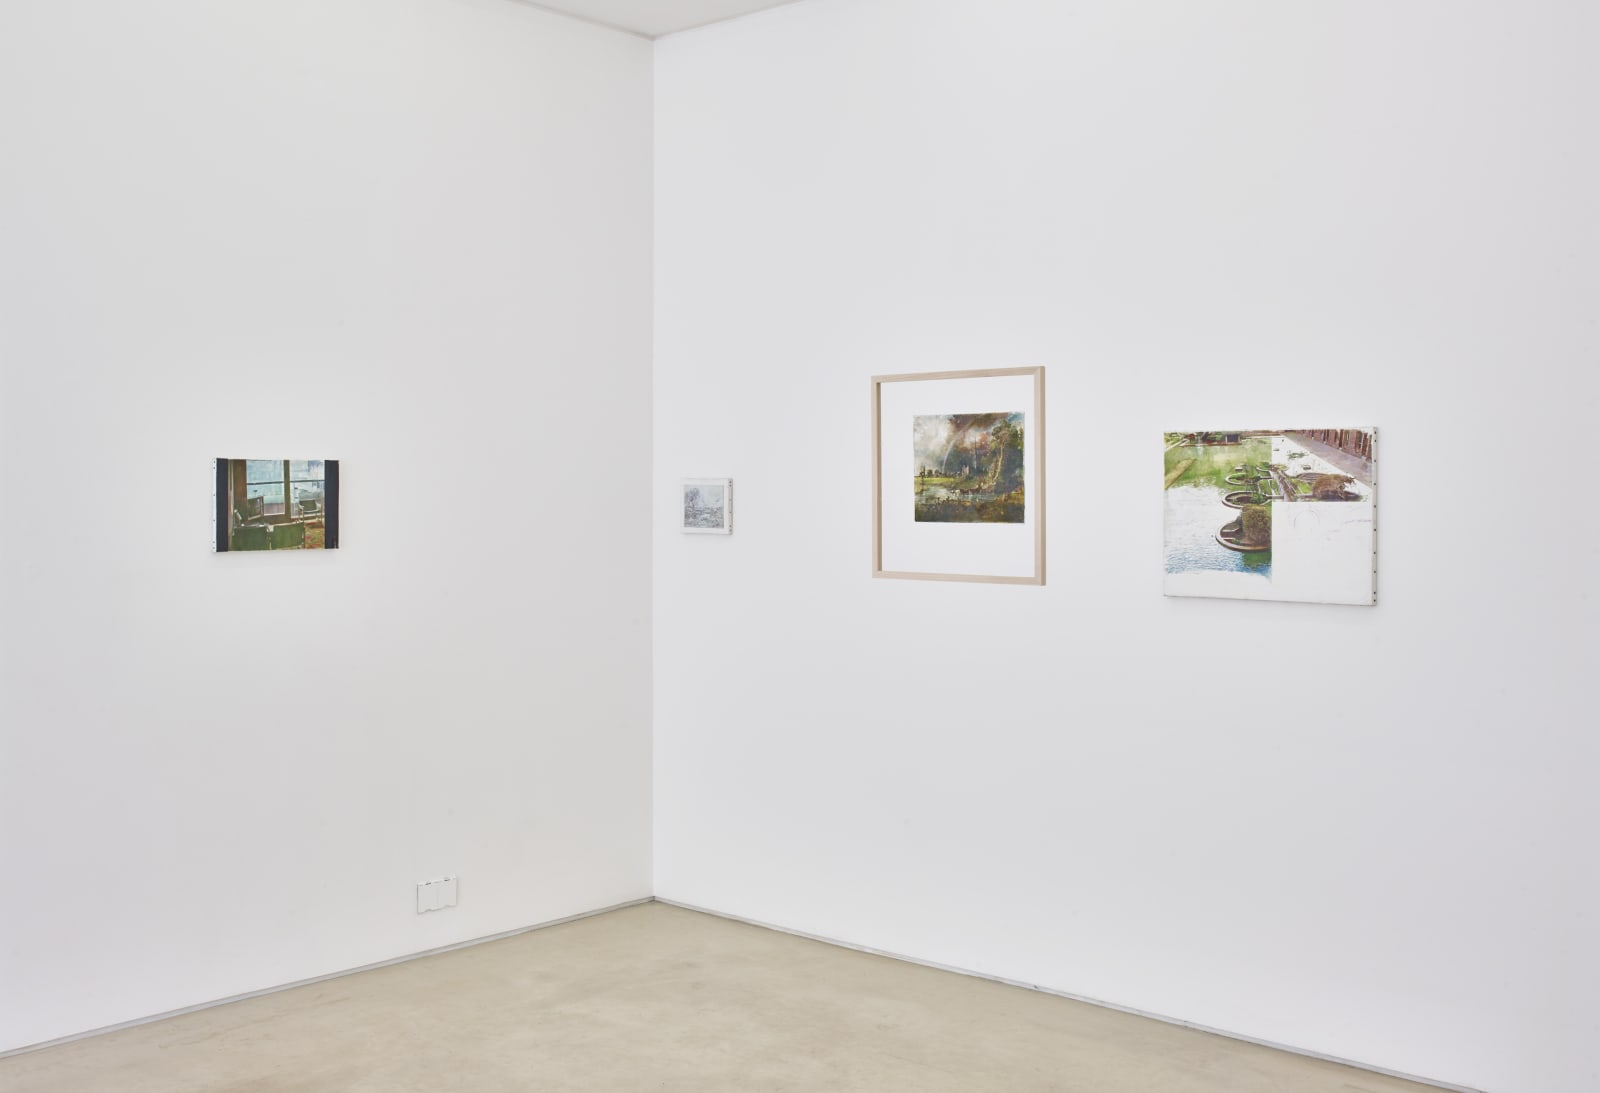 "<div class=""additional_caption"">Juan Araujo, 'Measurable distances of space and air', PEER, London (2019)</div>"